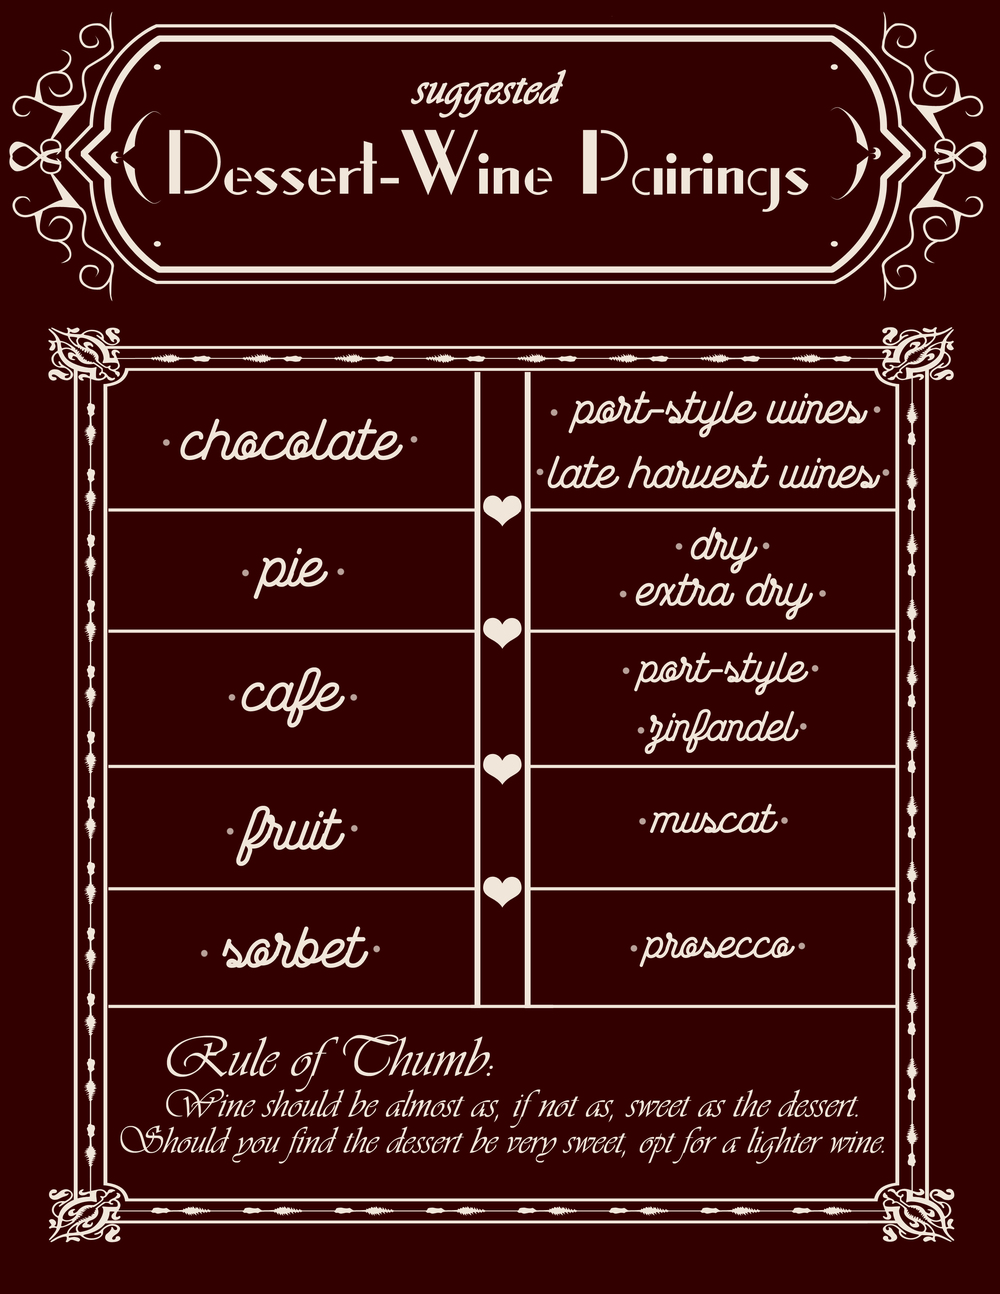 desset-wine-pairings-blog.jpg